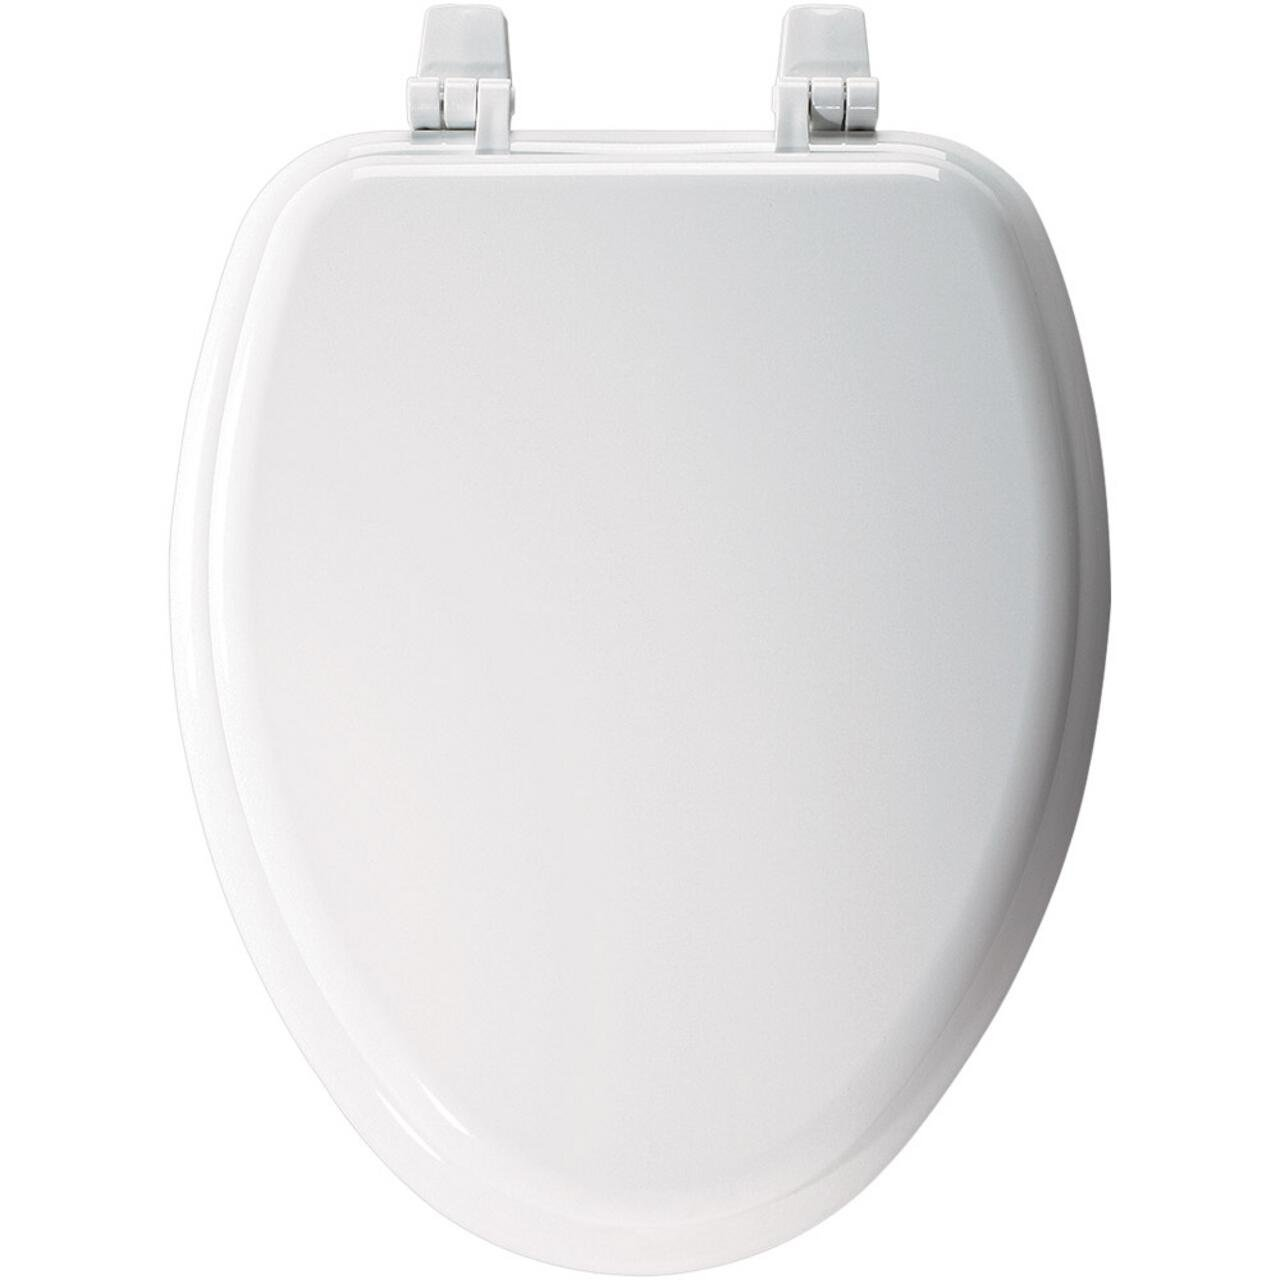 Church 1400TTC 000 Elongated Wood Toilet Seat with Cover, White